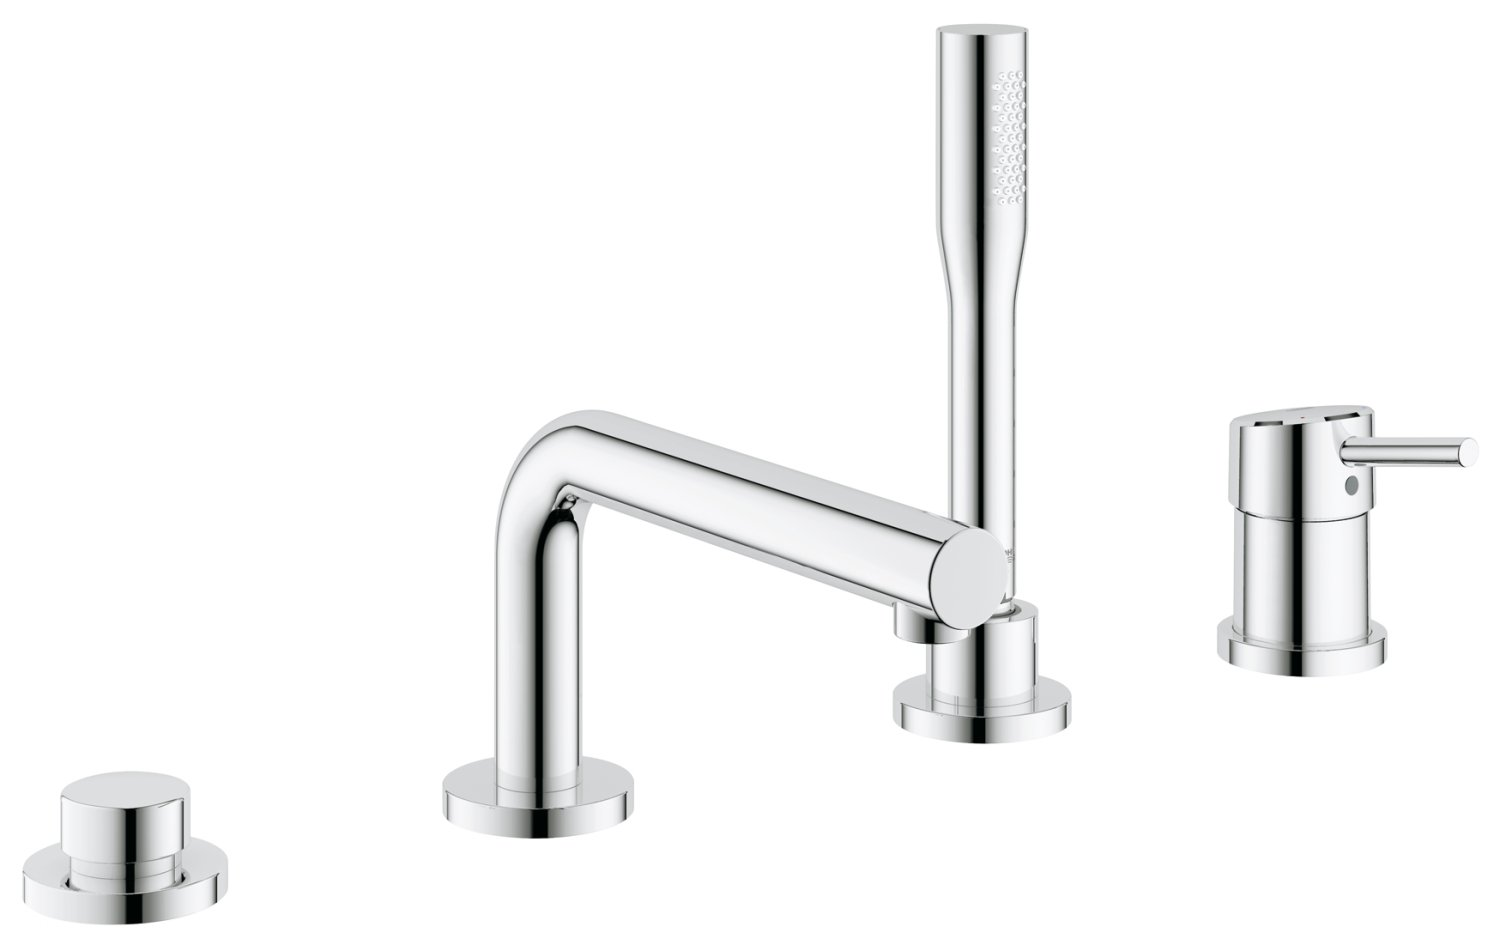 コンバイングローエ4穴EH。Concetto 19576001 B006WCLFZE  Grohe StarLight Chrome